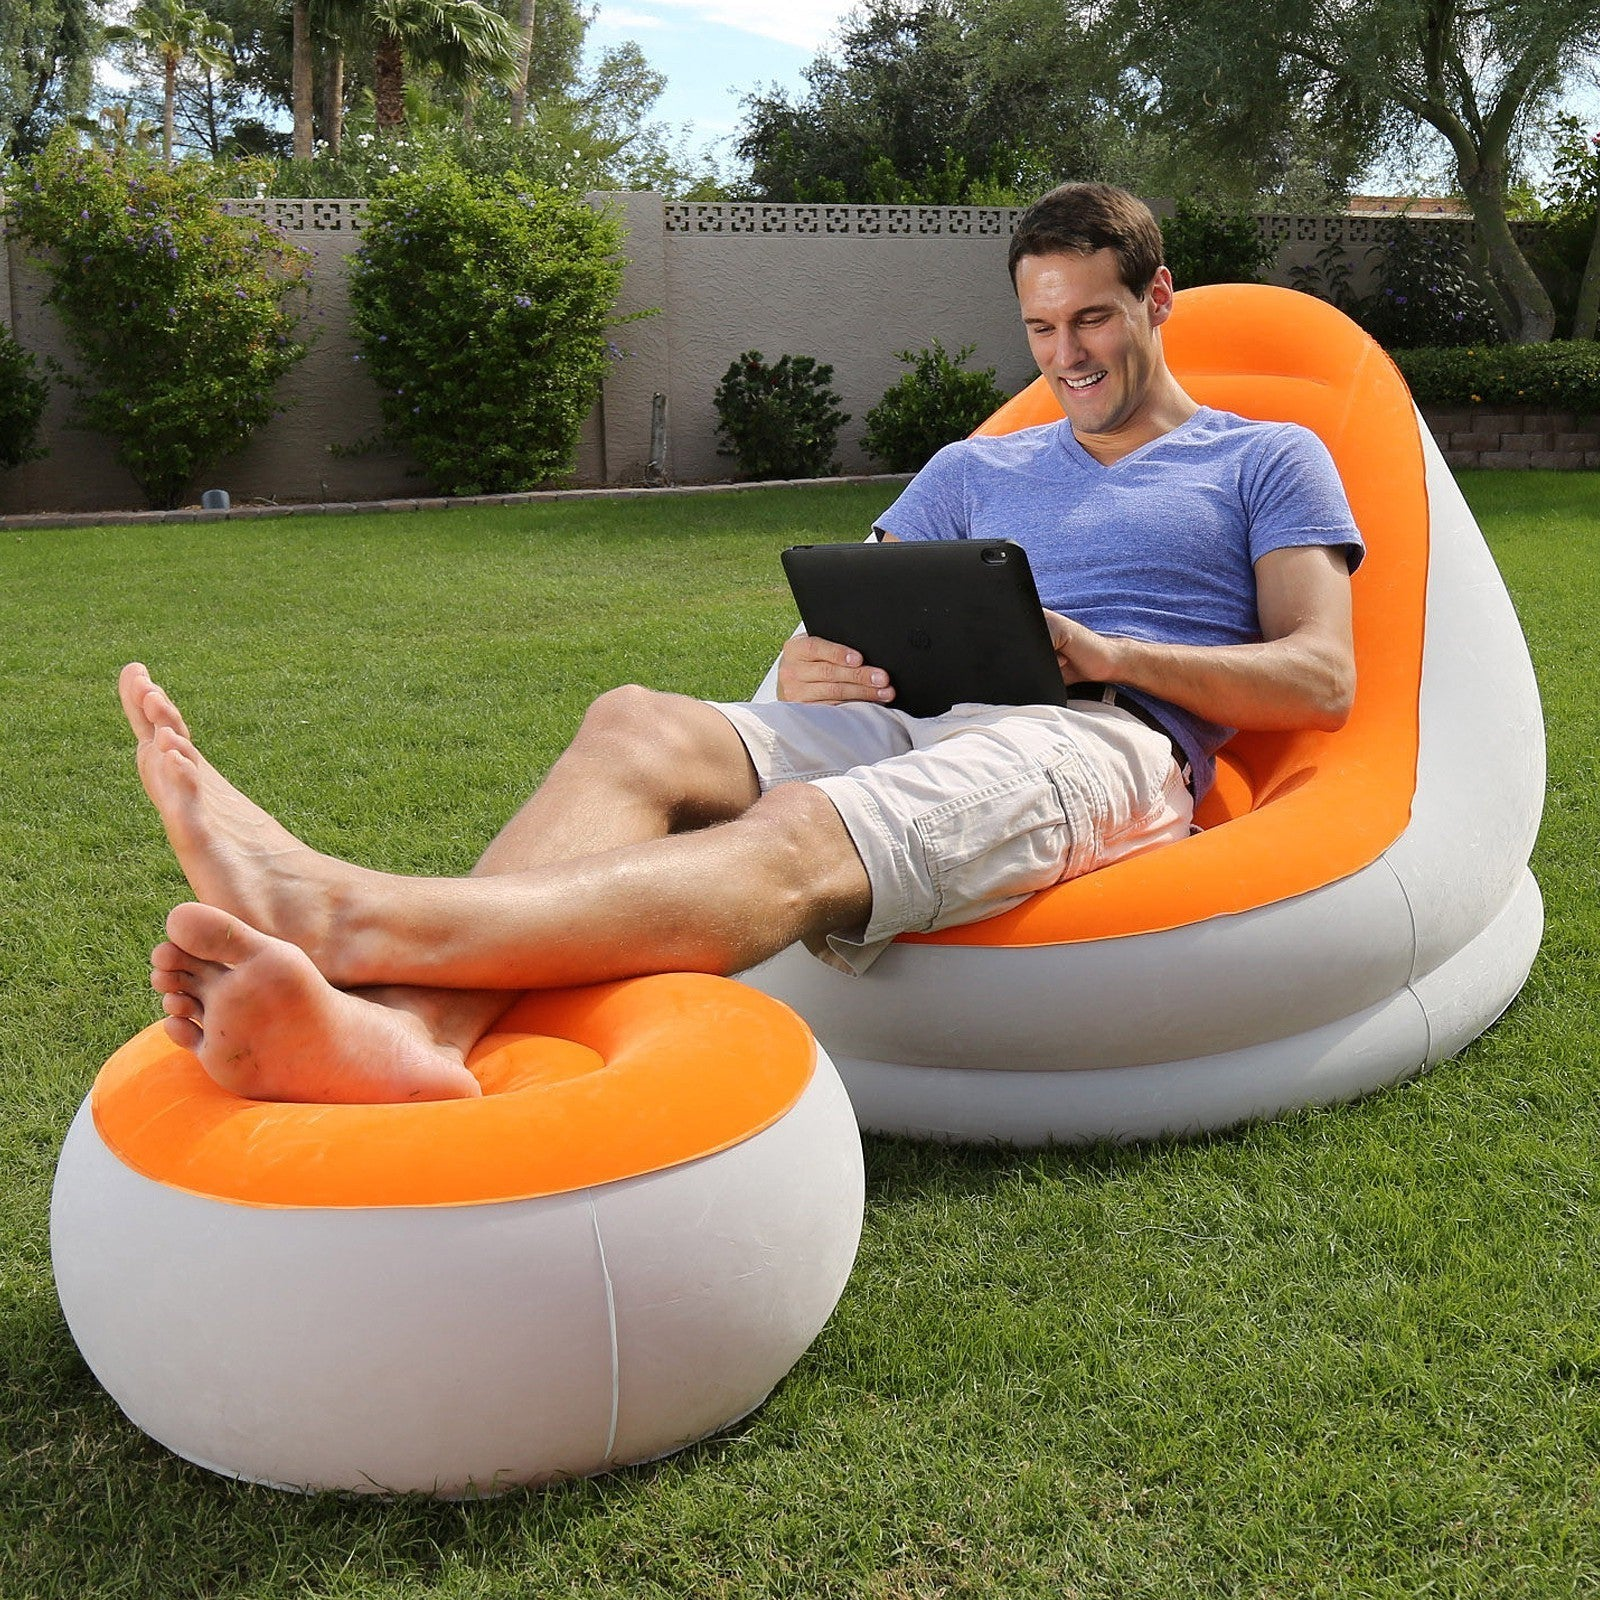 inflatable lounge furniture. New Inflatable Lounge Sofa With Chair Furniture